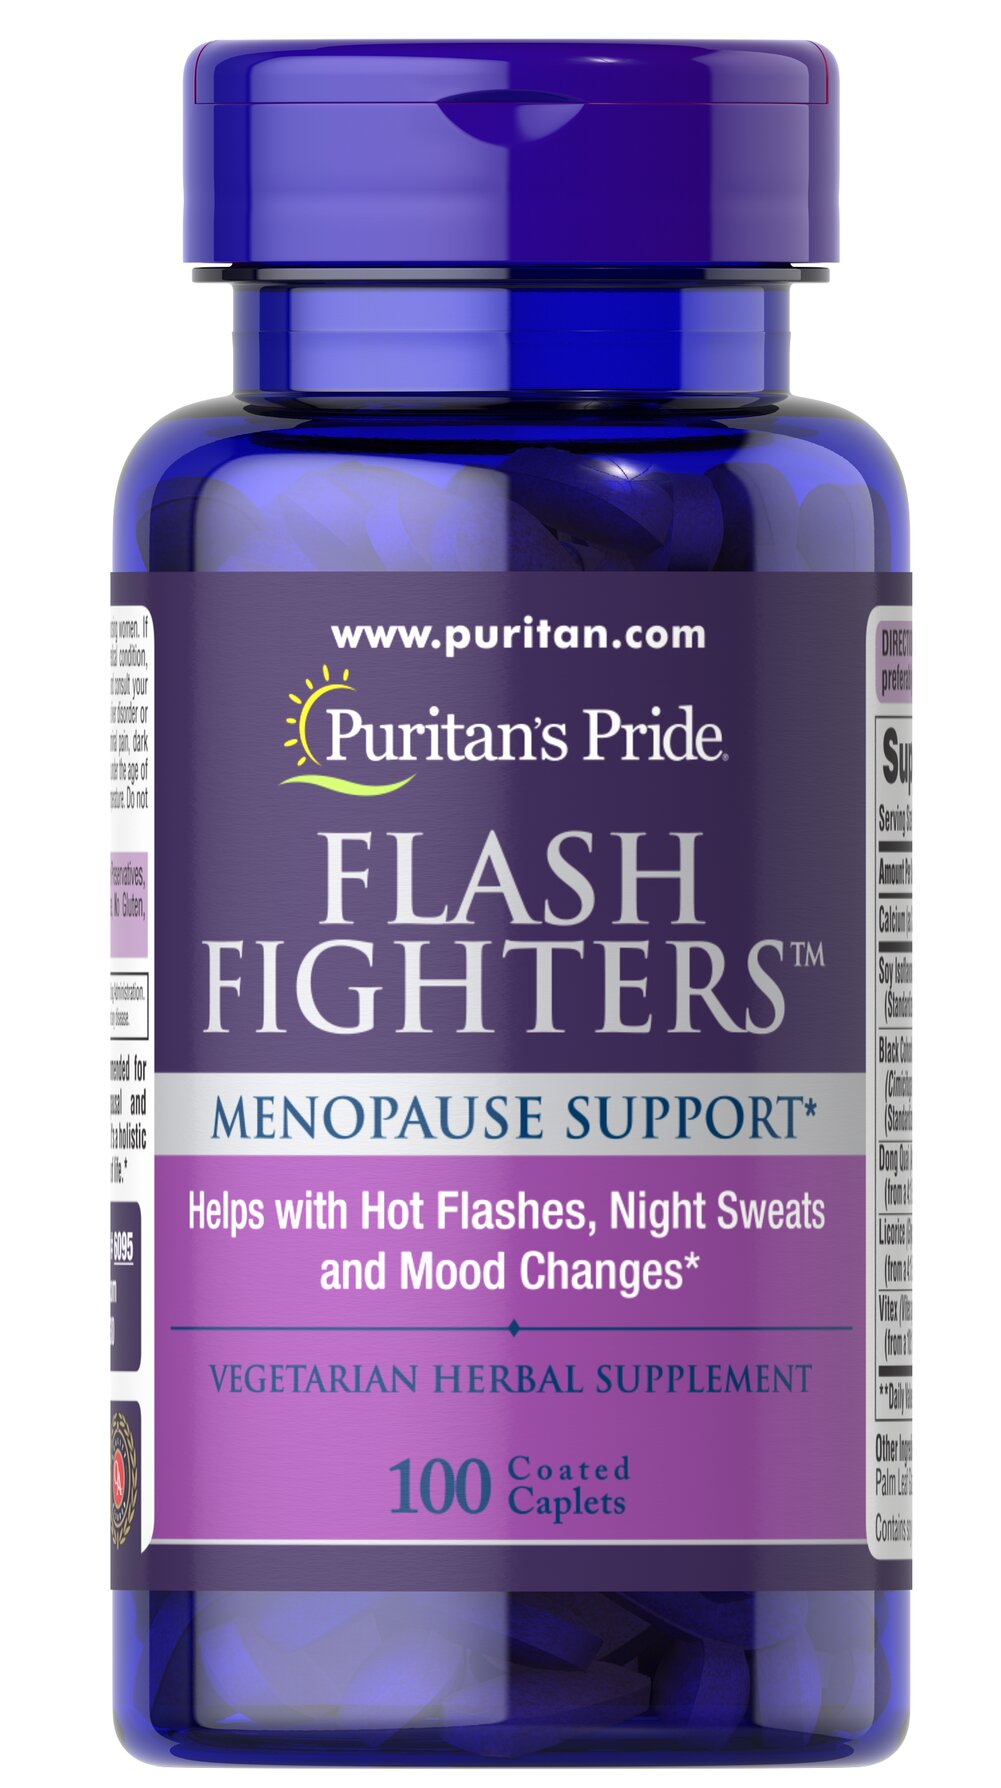 Flash Fighters™ <p>A combination of ingredients including Black Cohosh, Calcium, Soy, and more to help support the health of women during menopausal changes**</p> 100 Caplets  $22.99